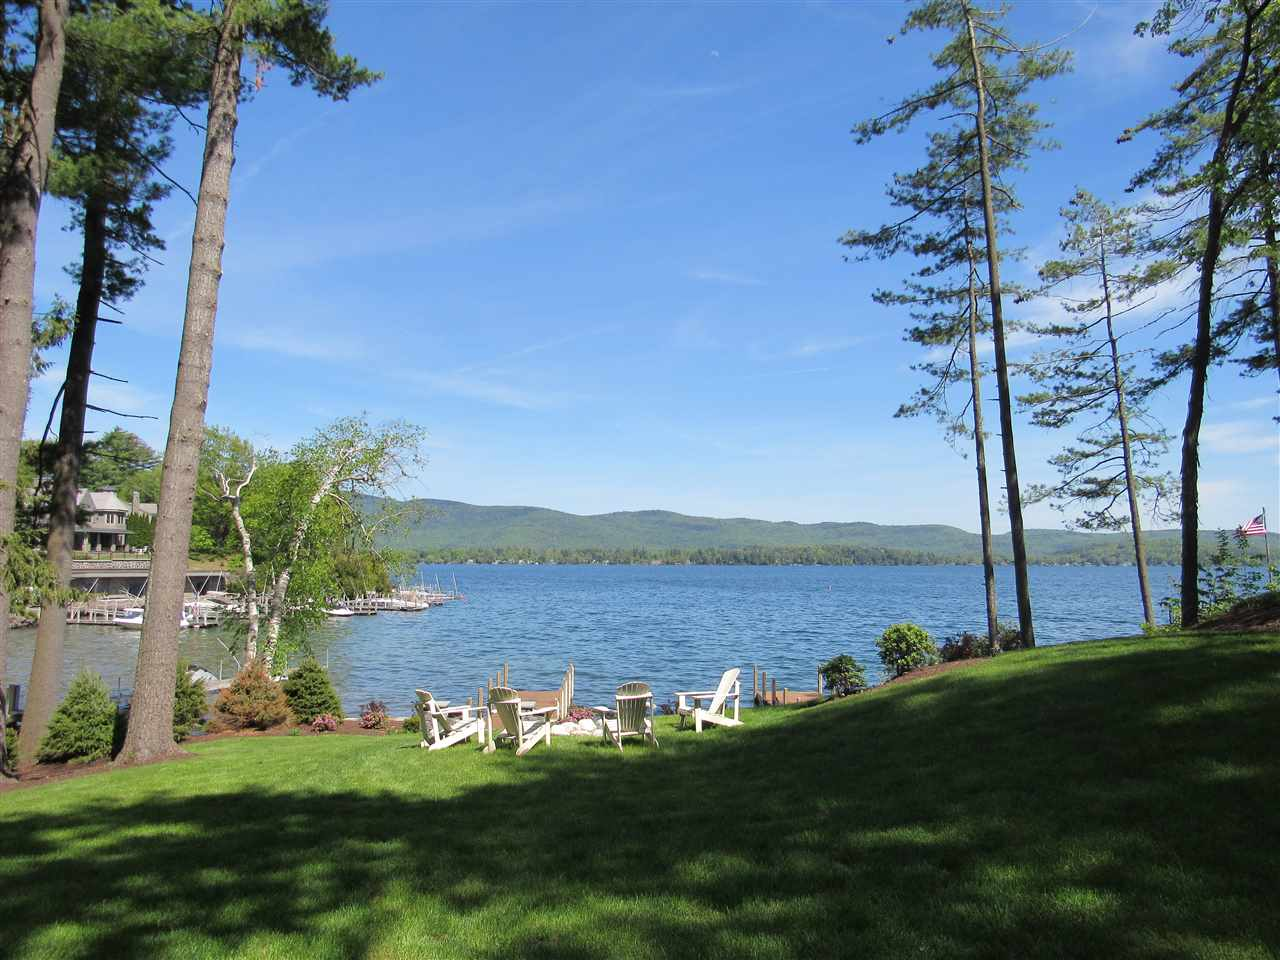 Lake George image 85